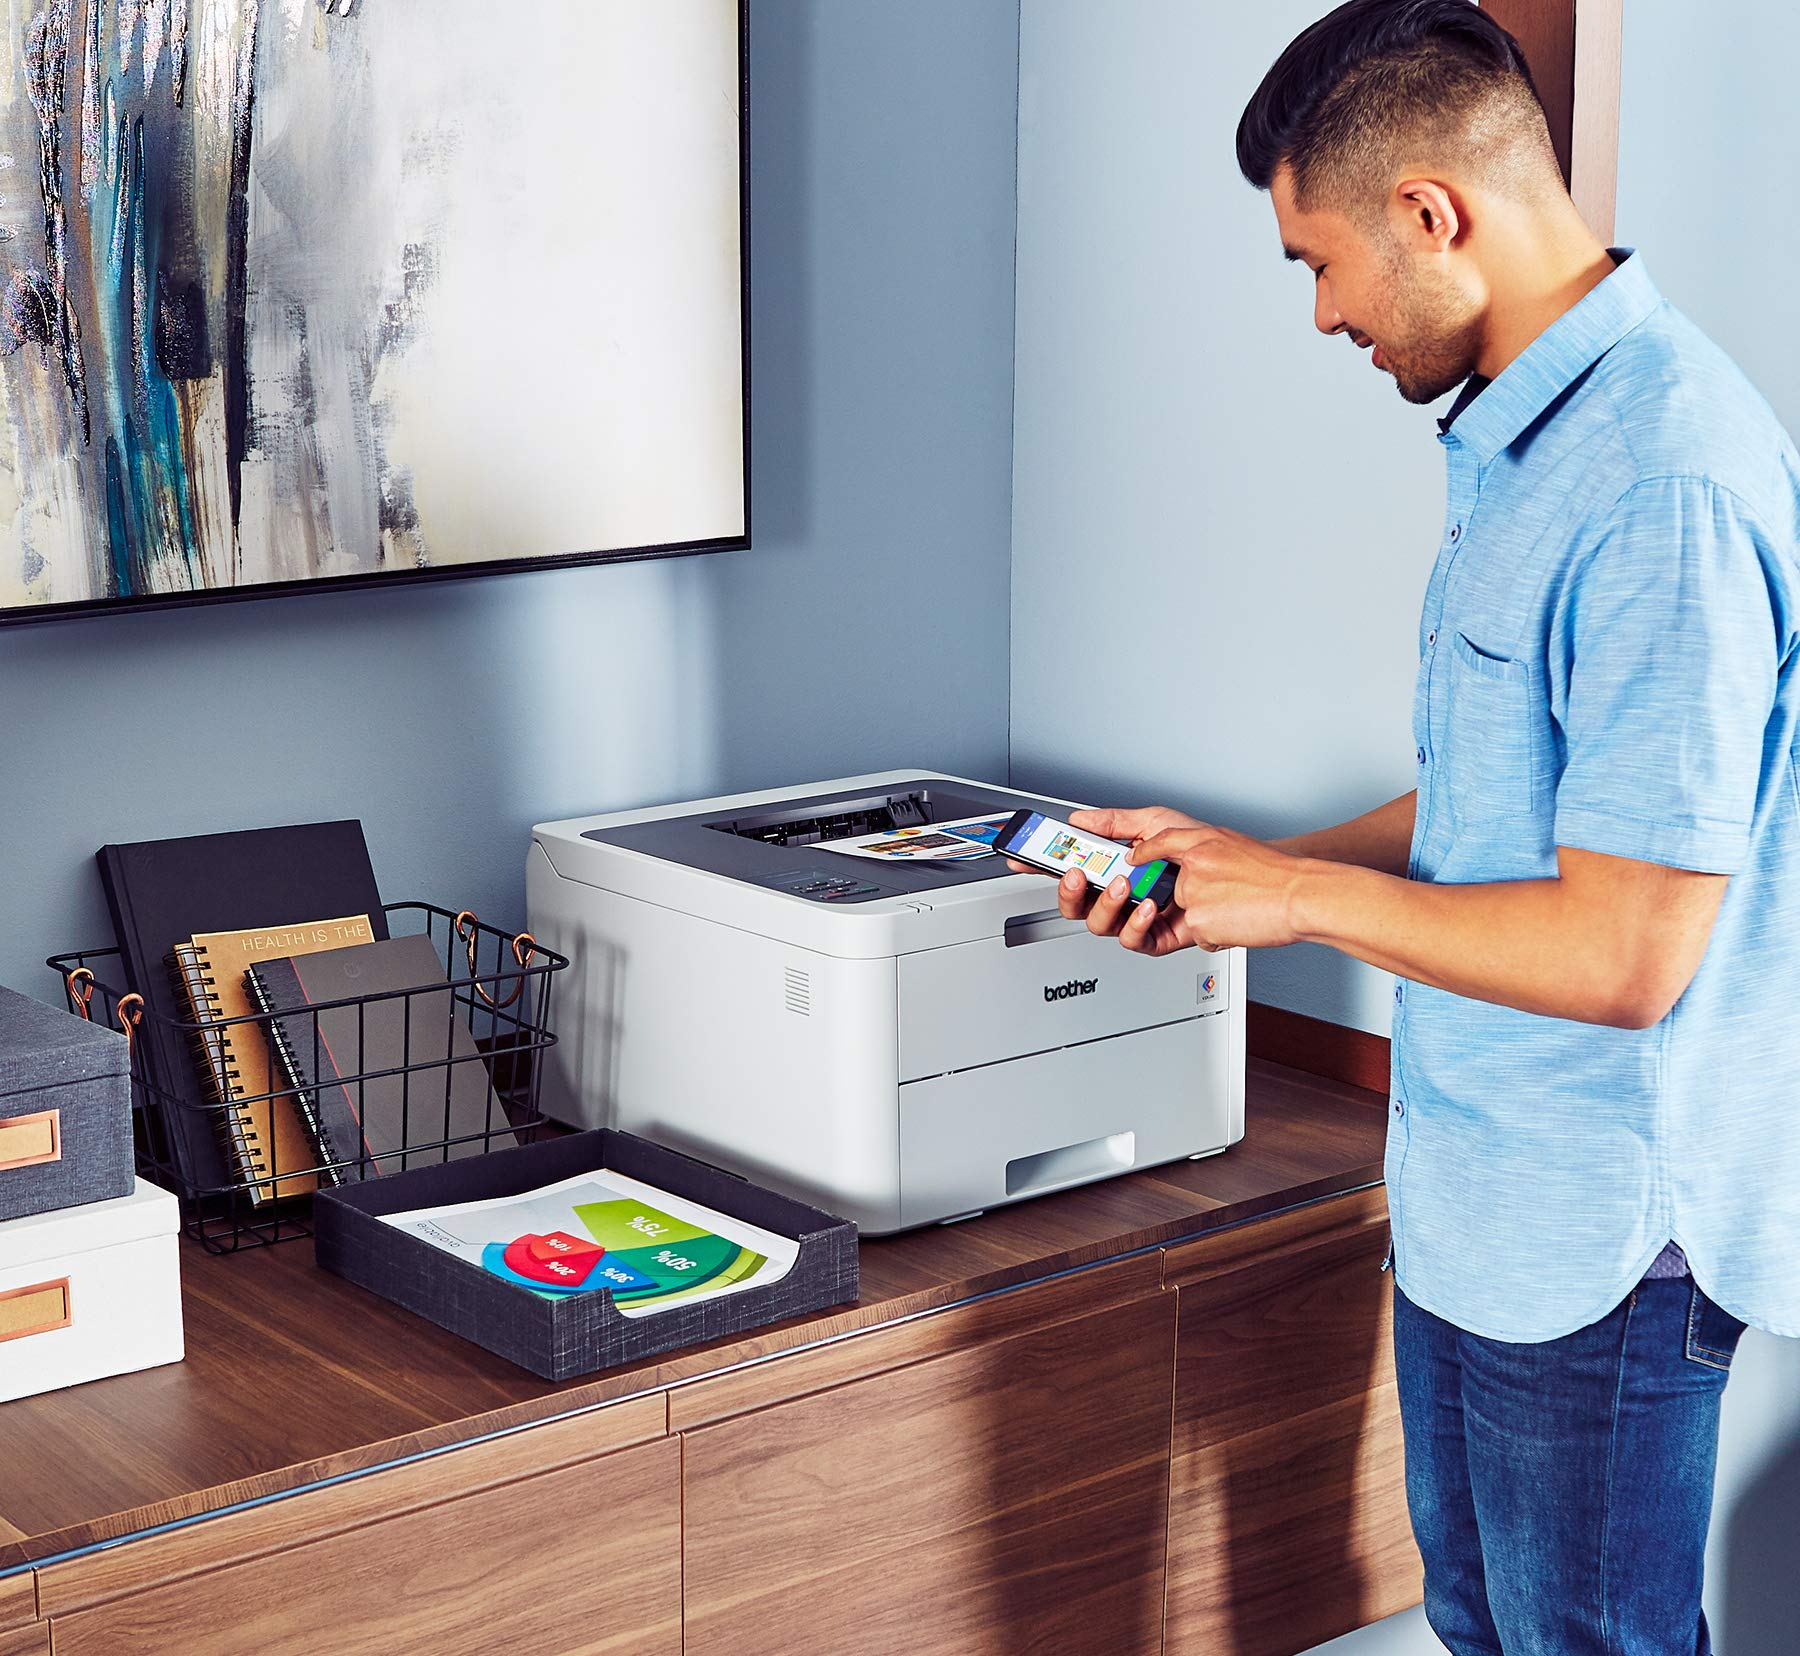 Brother HL-L3210CW Compact Digital Color Printer Providing Laser Printer Quality Results with Wireless, Amazon Dash Replenishment Enabled, White by Brother (Image #4)